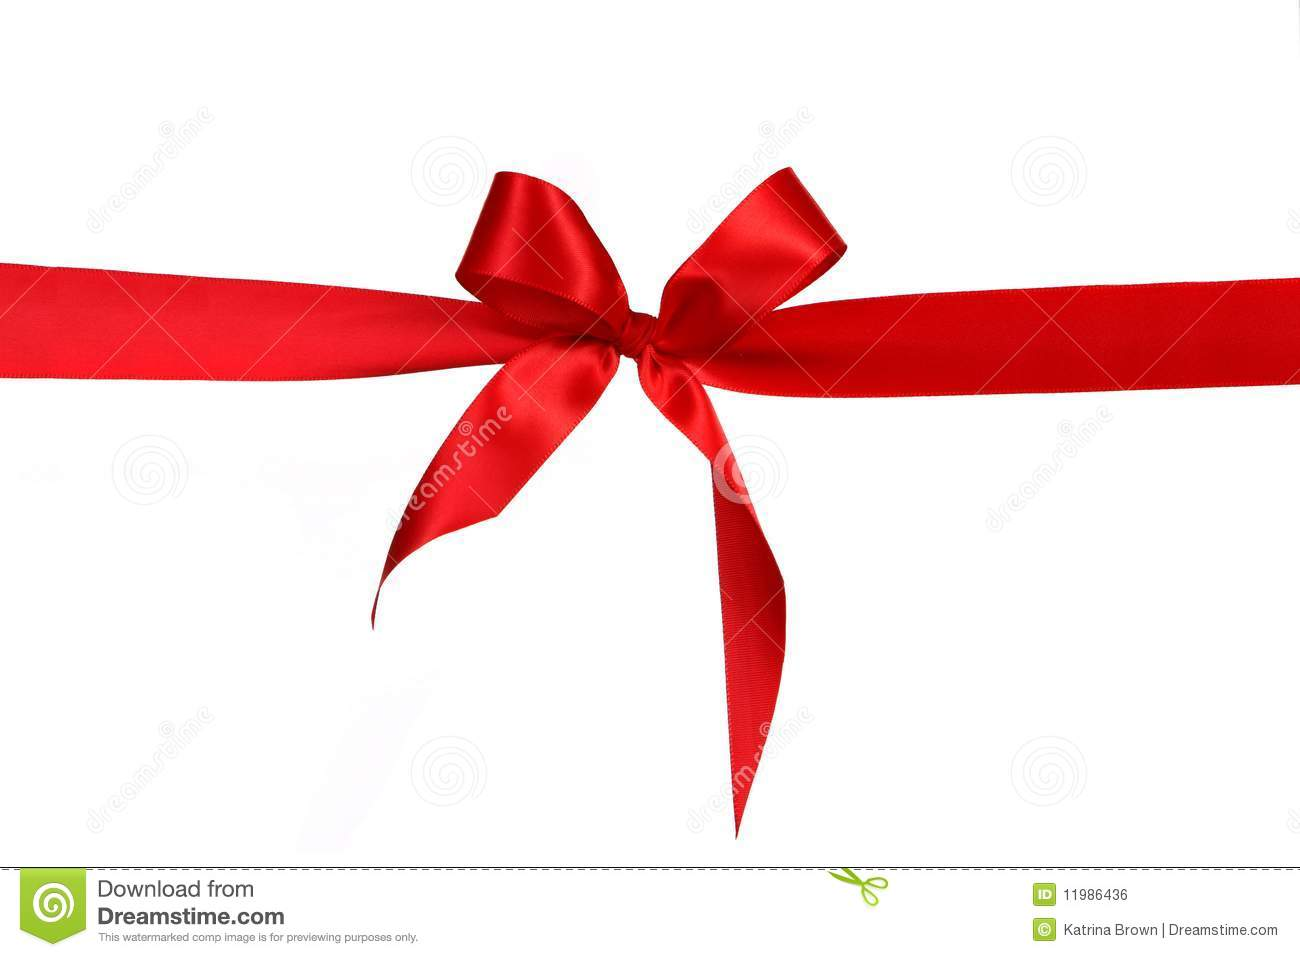 red gift ribbon bow stock illustration illustration of festive